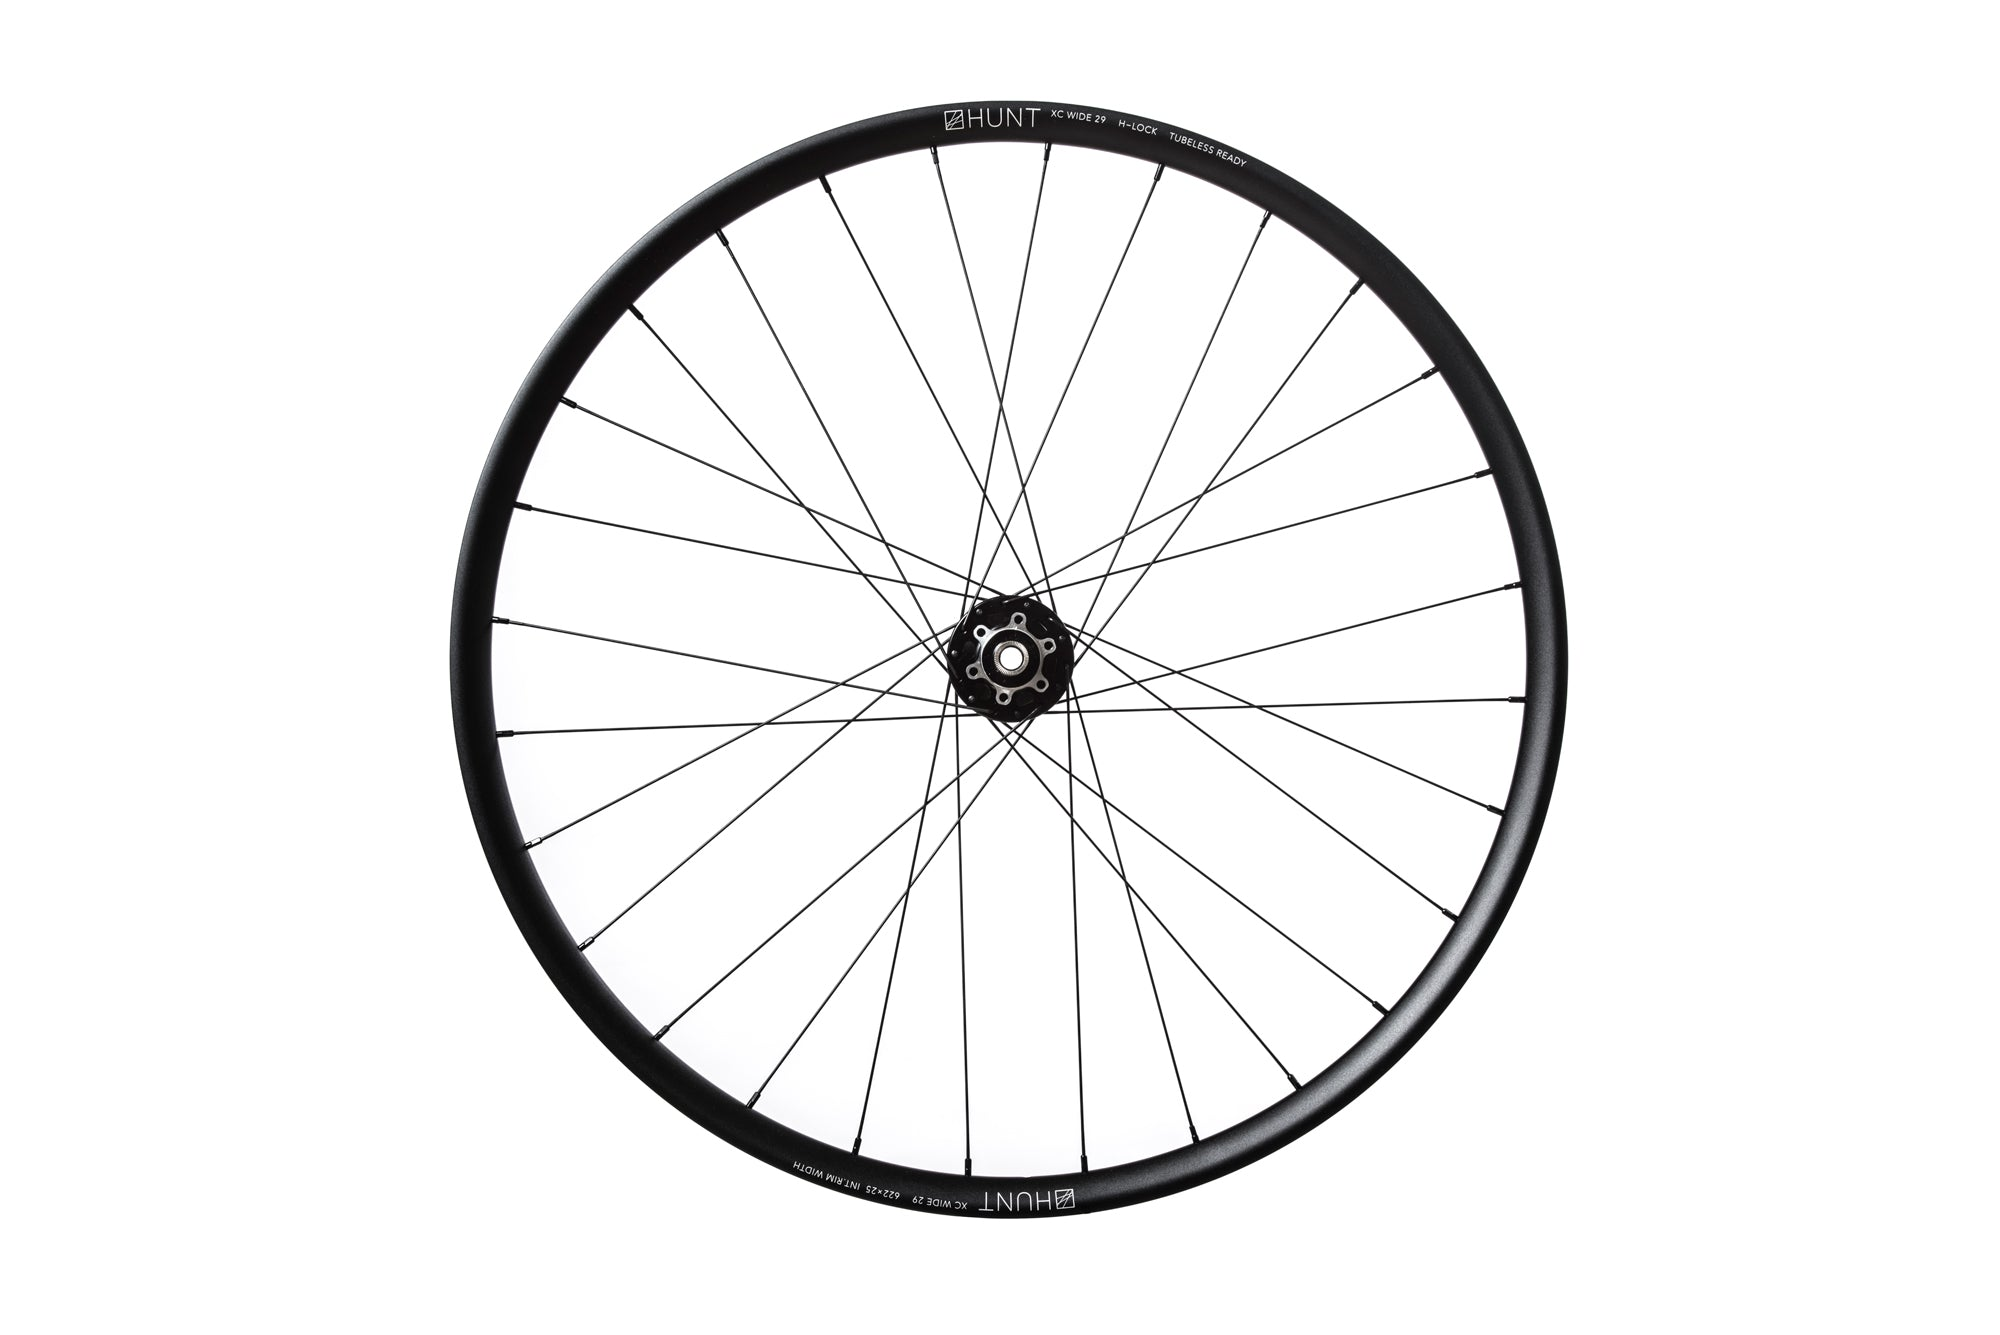 "<h1>Rims</h1><i>The XC Wide rim strikes the perfect balance between durability and performance making sure every ride is better than the last. The 6066 T6 alloy (welded) rim features a 25mm internal width to provide support during hard cornering or when throttling through techy sections. Optimized for 2.1""-2.35"" tyres, the XCWide won't hold you back.</i>"